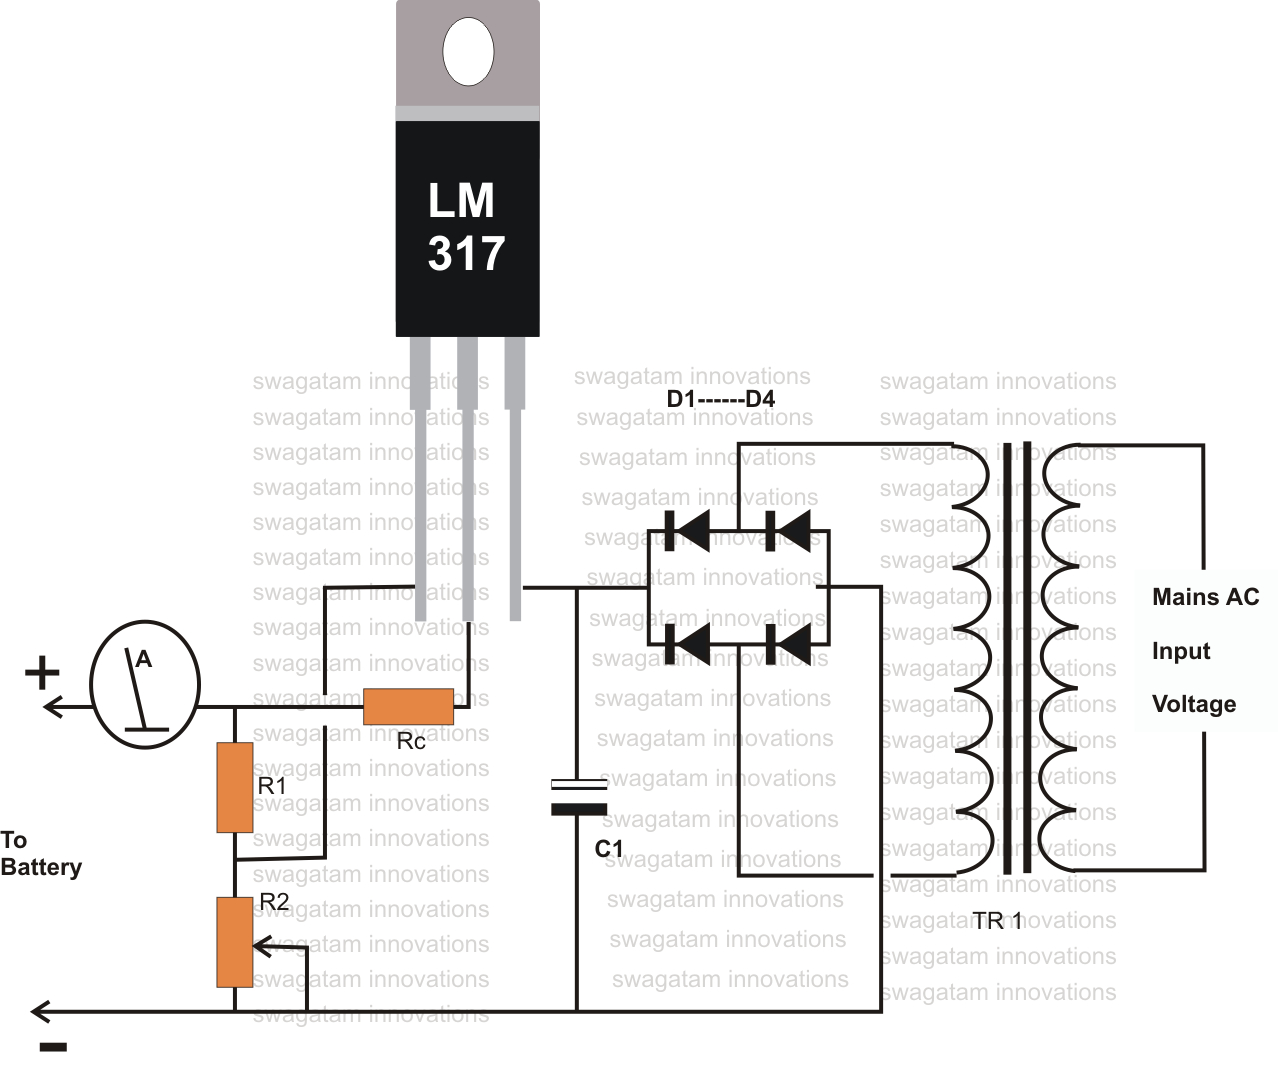 12 Volt Battery Charger Diagram | Battery | Pinterest | Circuit - Usb Charger Wiring 12V Diagram